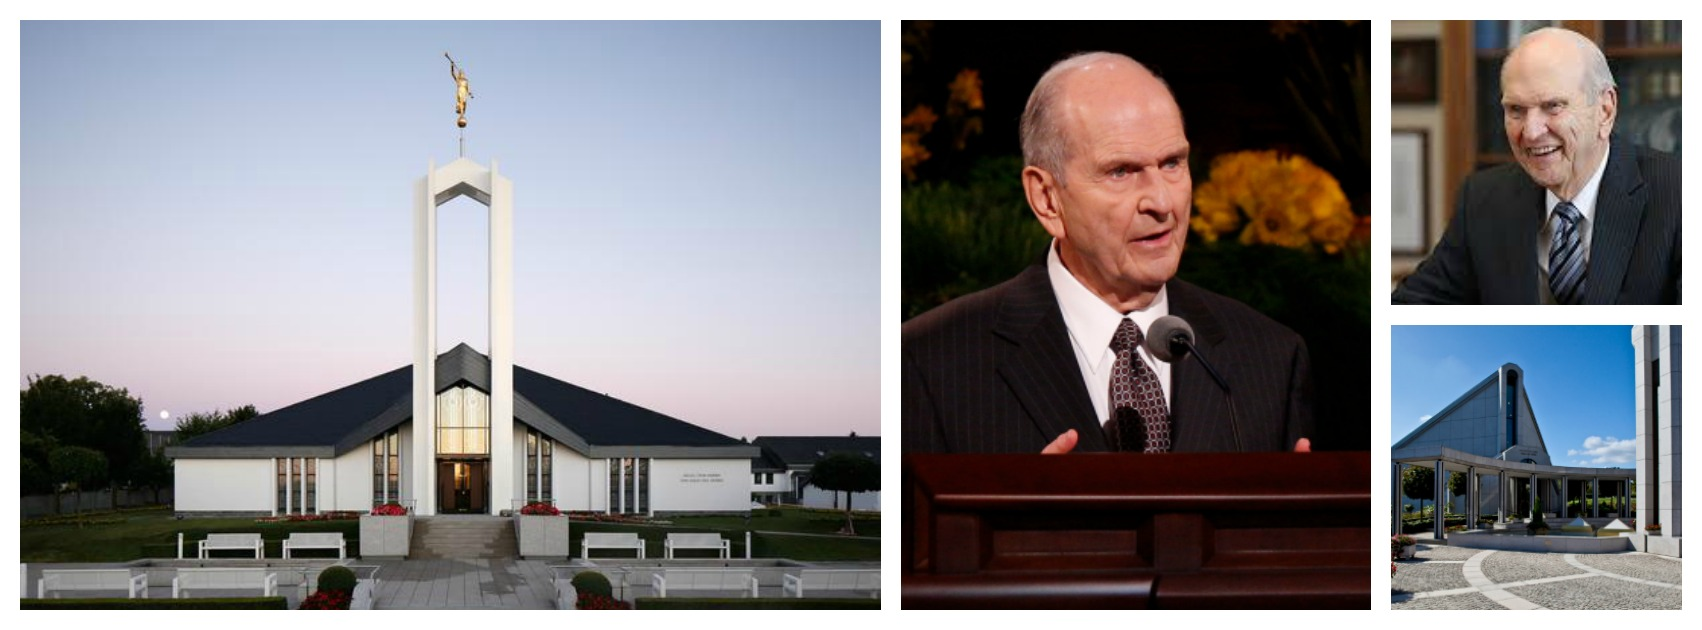 COLLAGE elder NELSON l'impossible